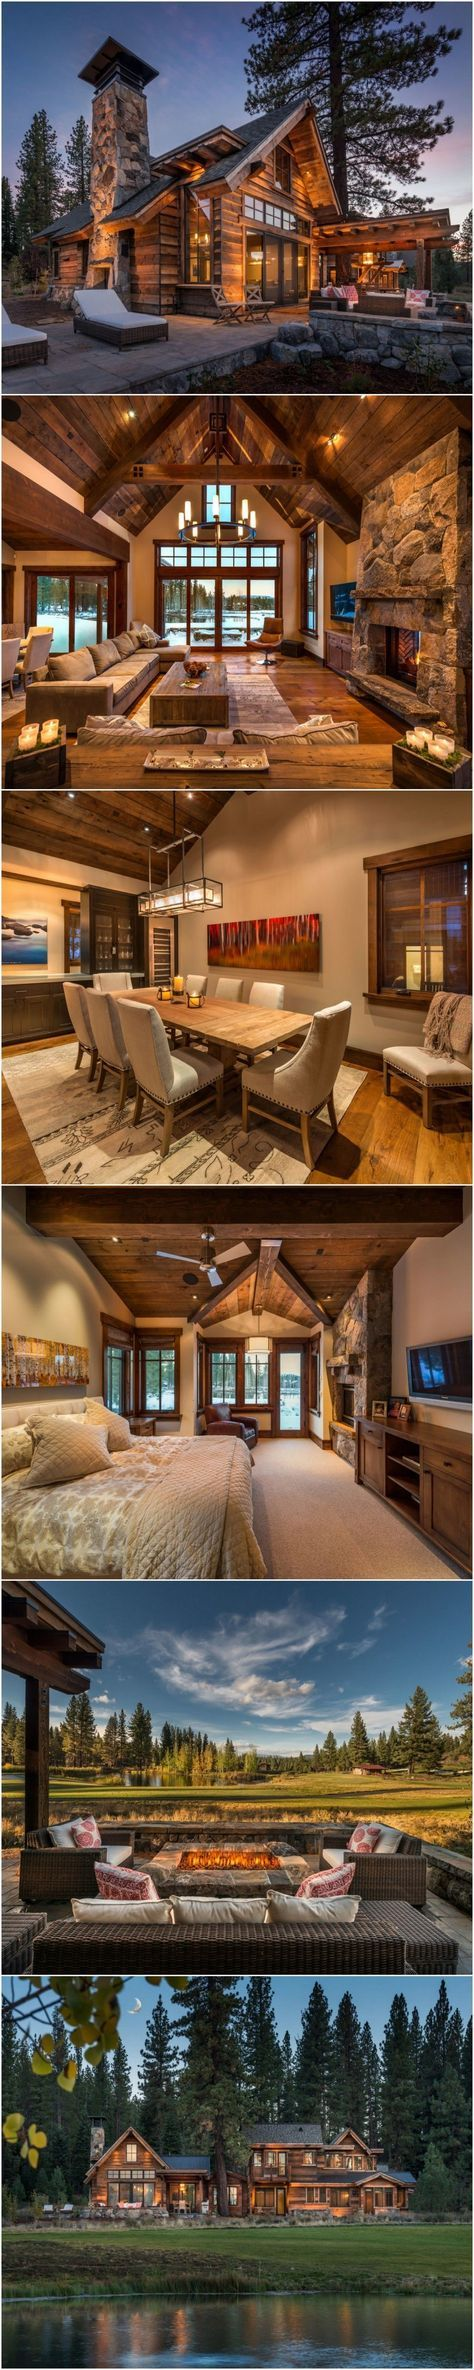 Company Statement: Since 1994 Mark Tanner Construction has been the leading builder of custom homes in the Lake Tahoe Truckee area. Our dedicated crew can transform any space into an expression of who you are! We specialize in creating livable, workable, and flexible spaces that meet the needs